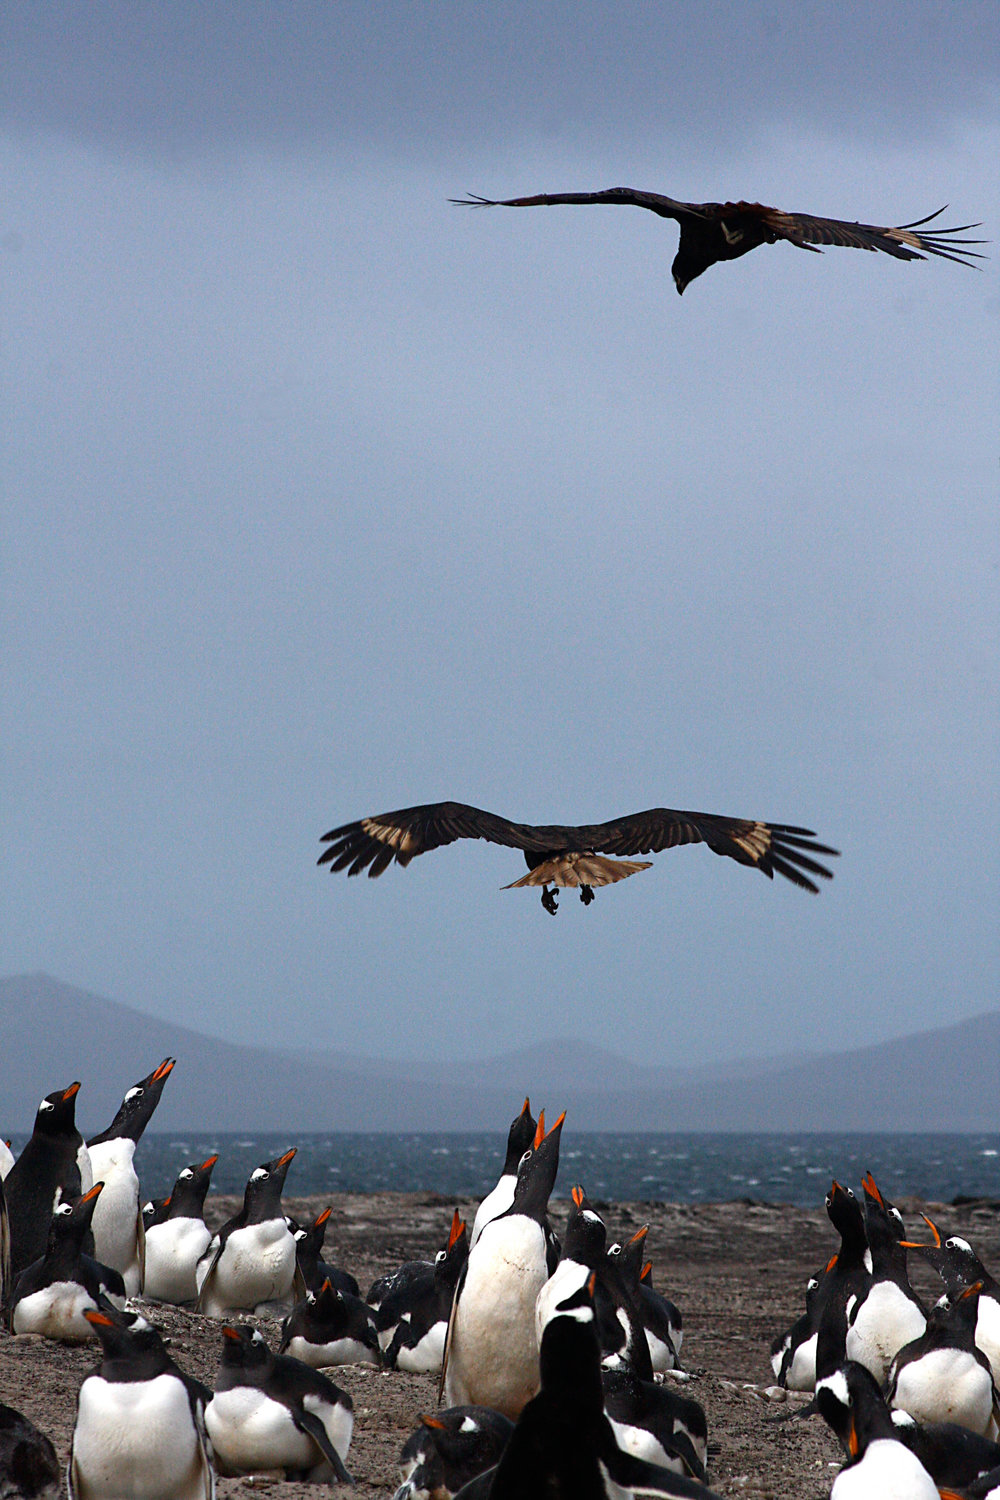 Gentoo Penguin and Skua confrontation